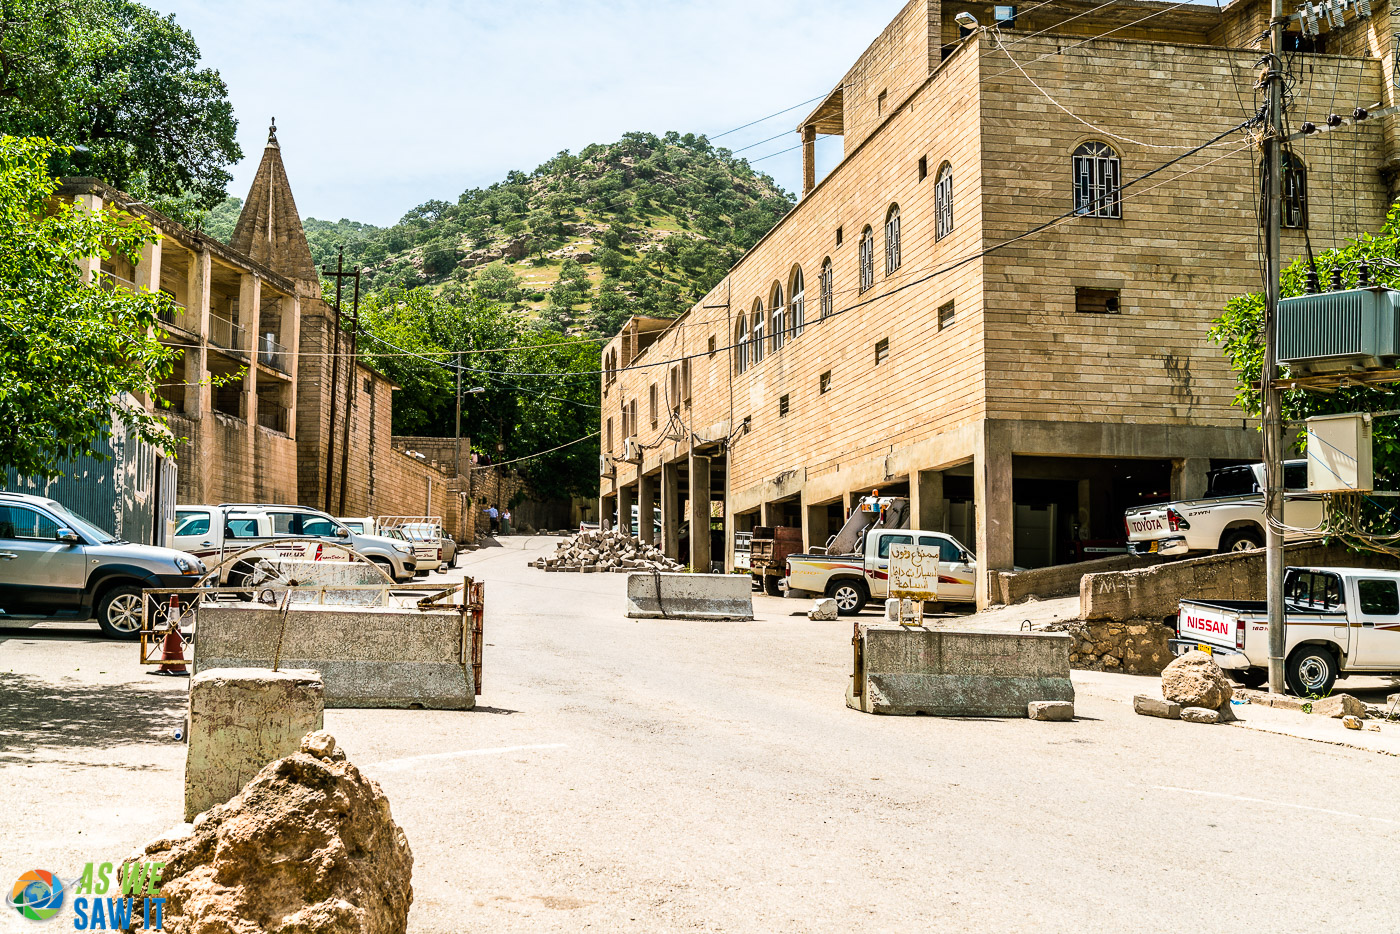 Concrete barriers in the road protect the entrance to Lalish from large vehicles.